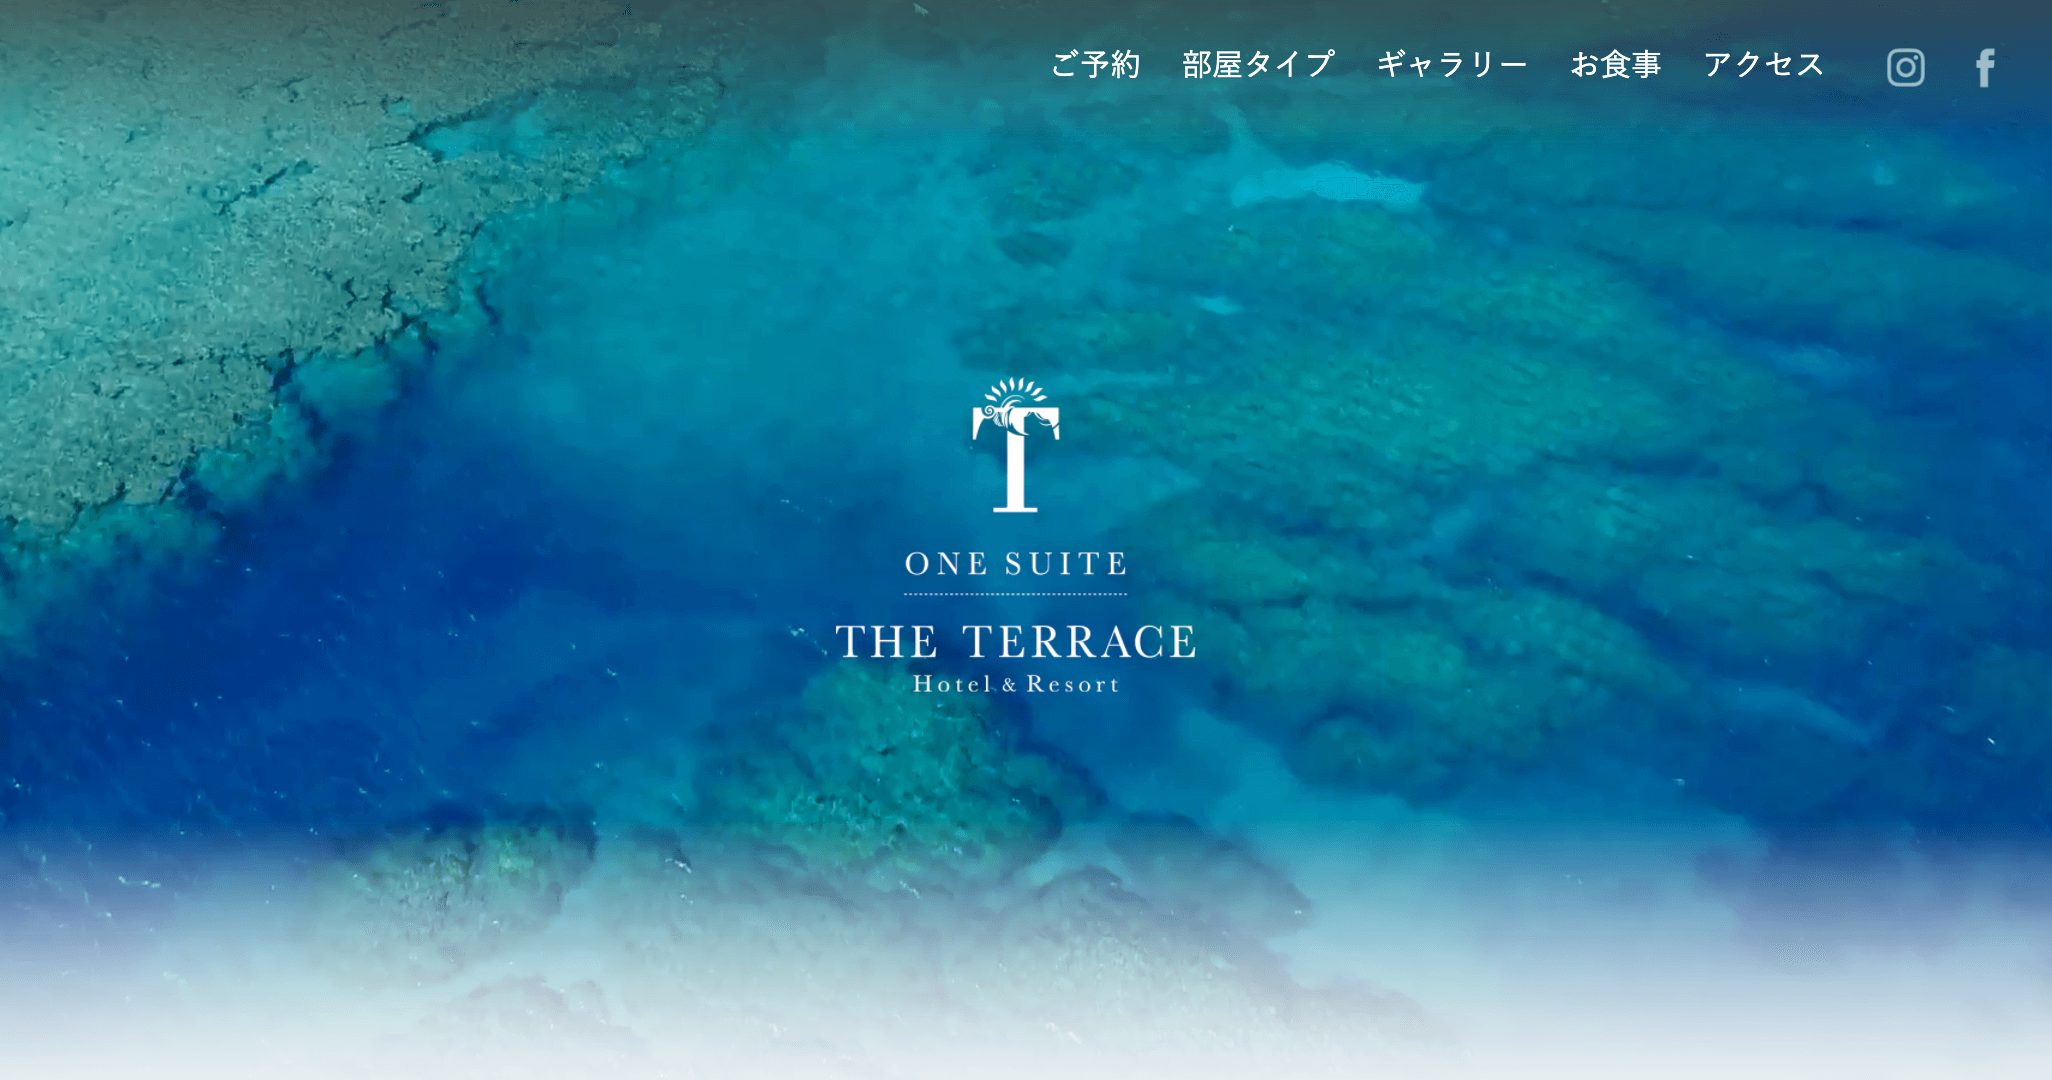 One Suite THE TERRACE グランドオープン